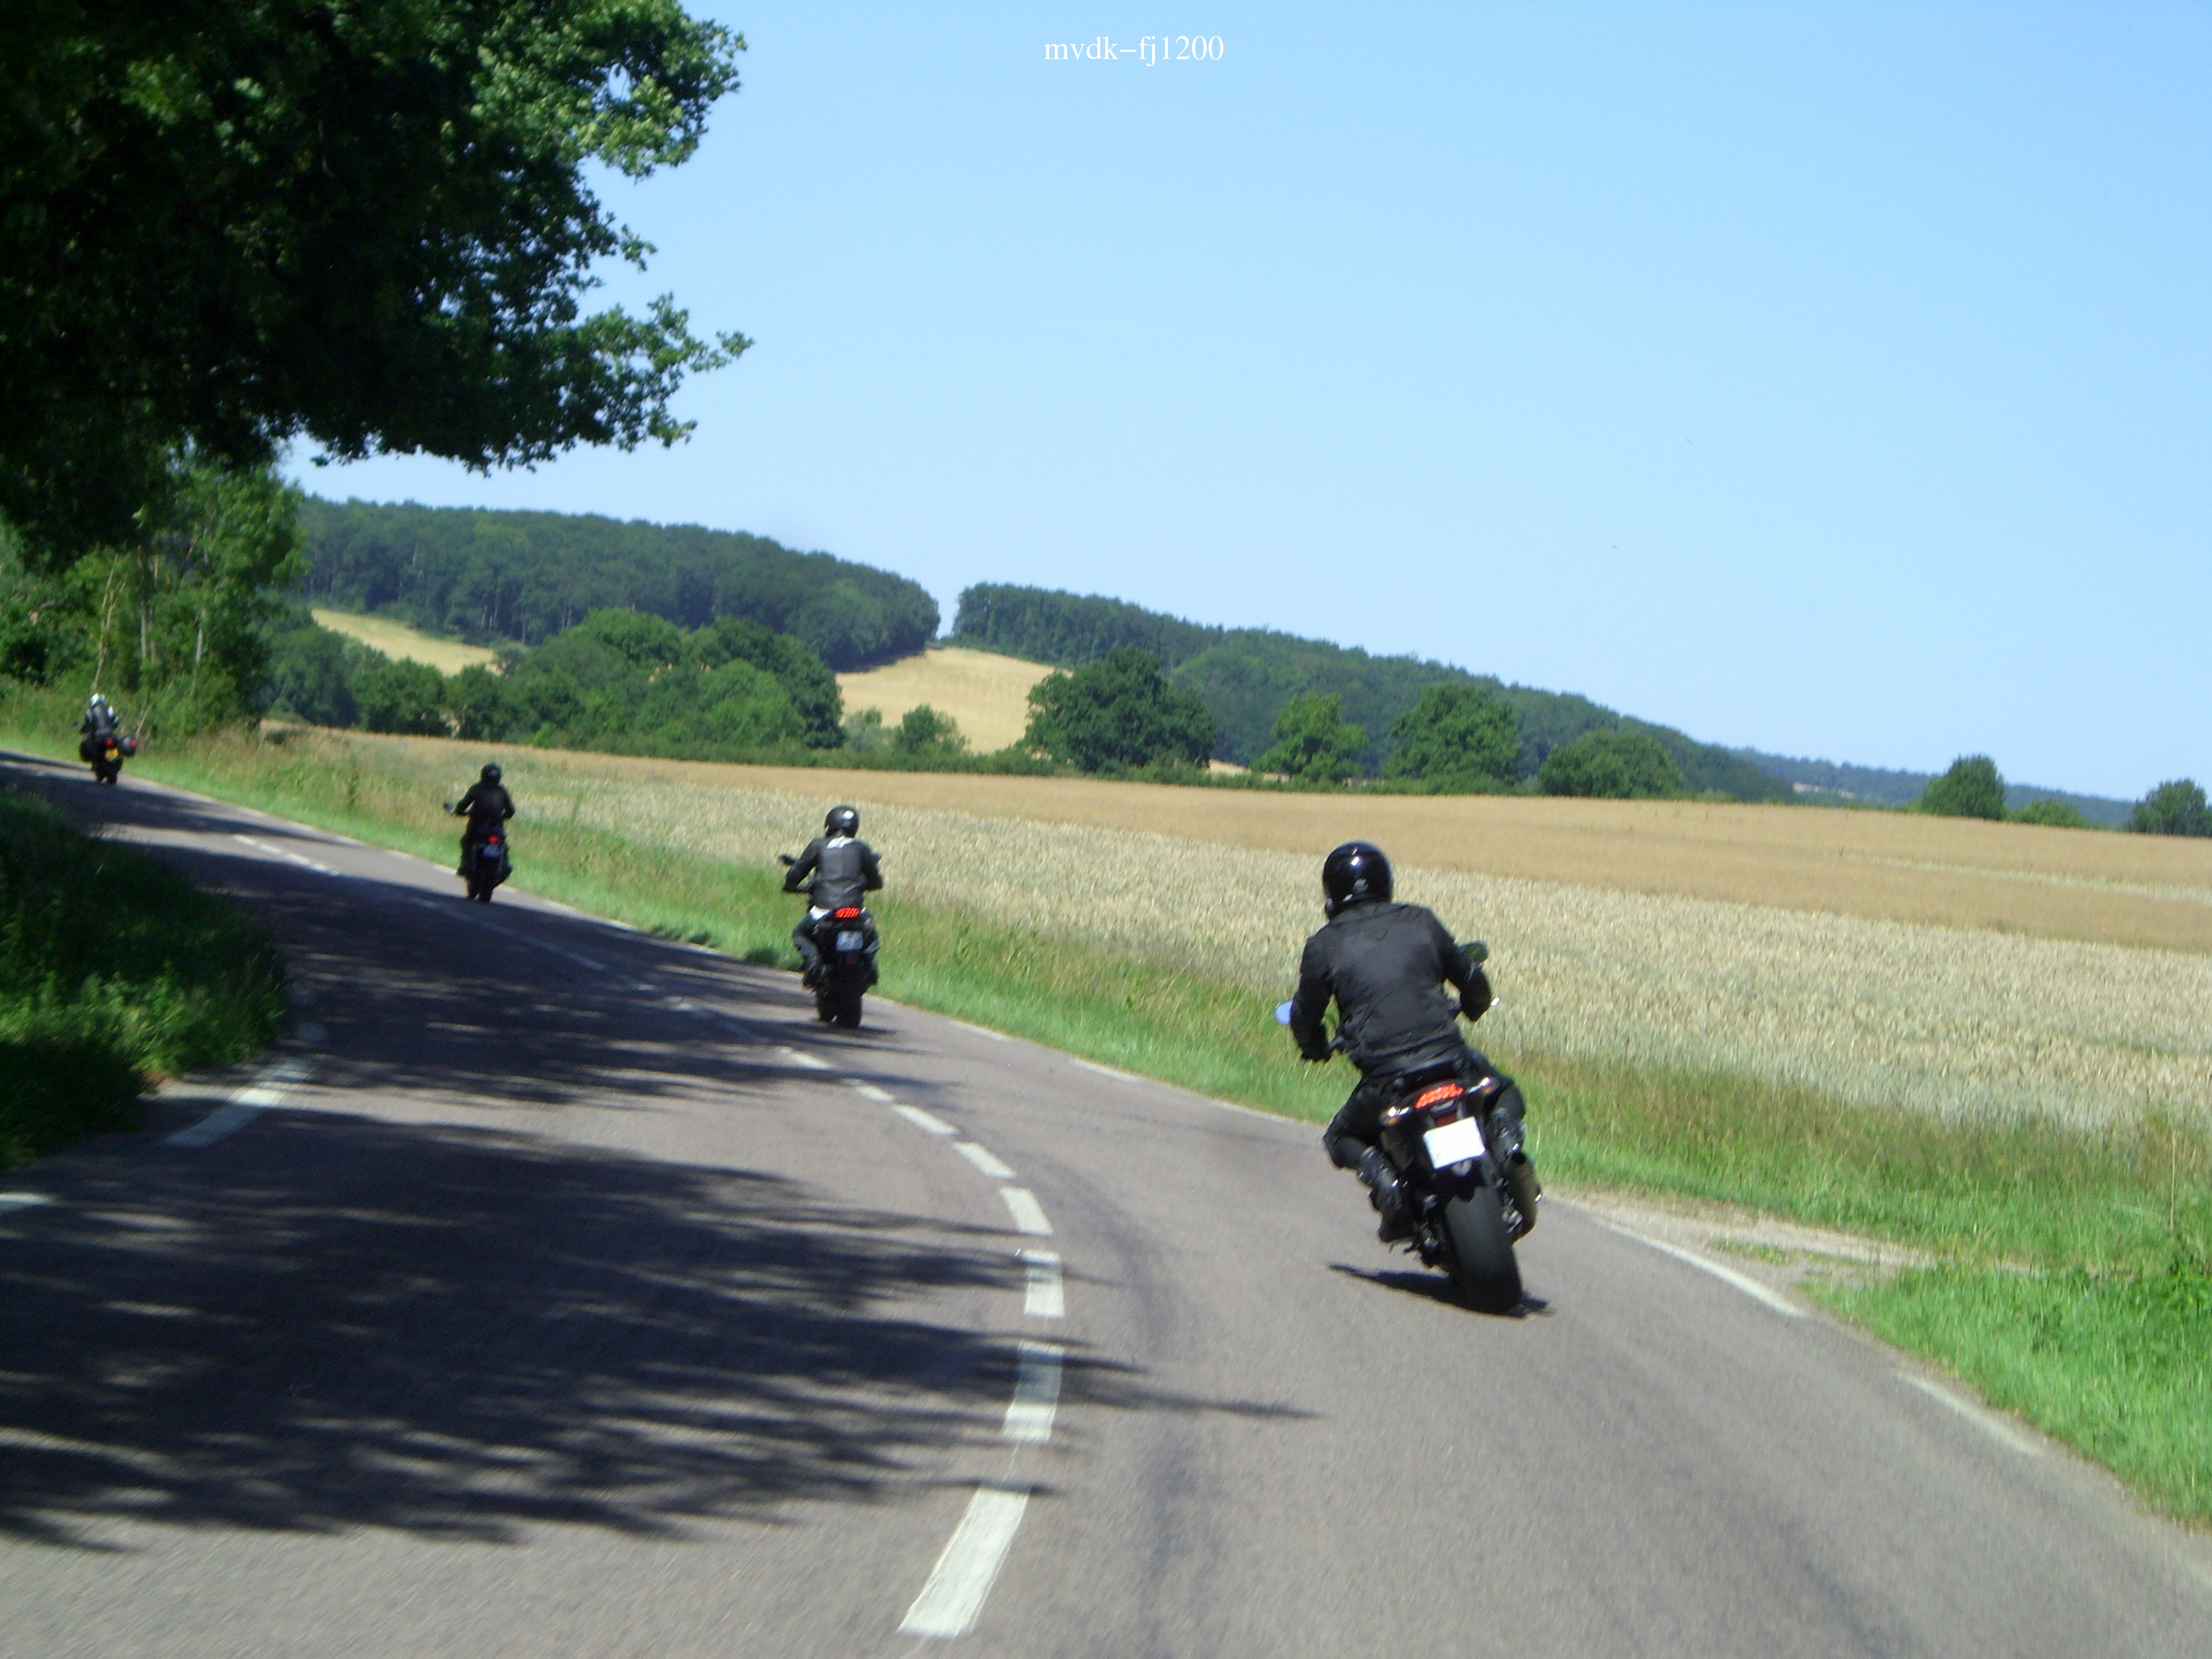 balade en vall e de chevreuse 08 07 motards idf. Black Bedroom Furniture Sets. Home Design Ideas